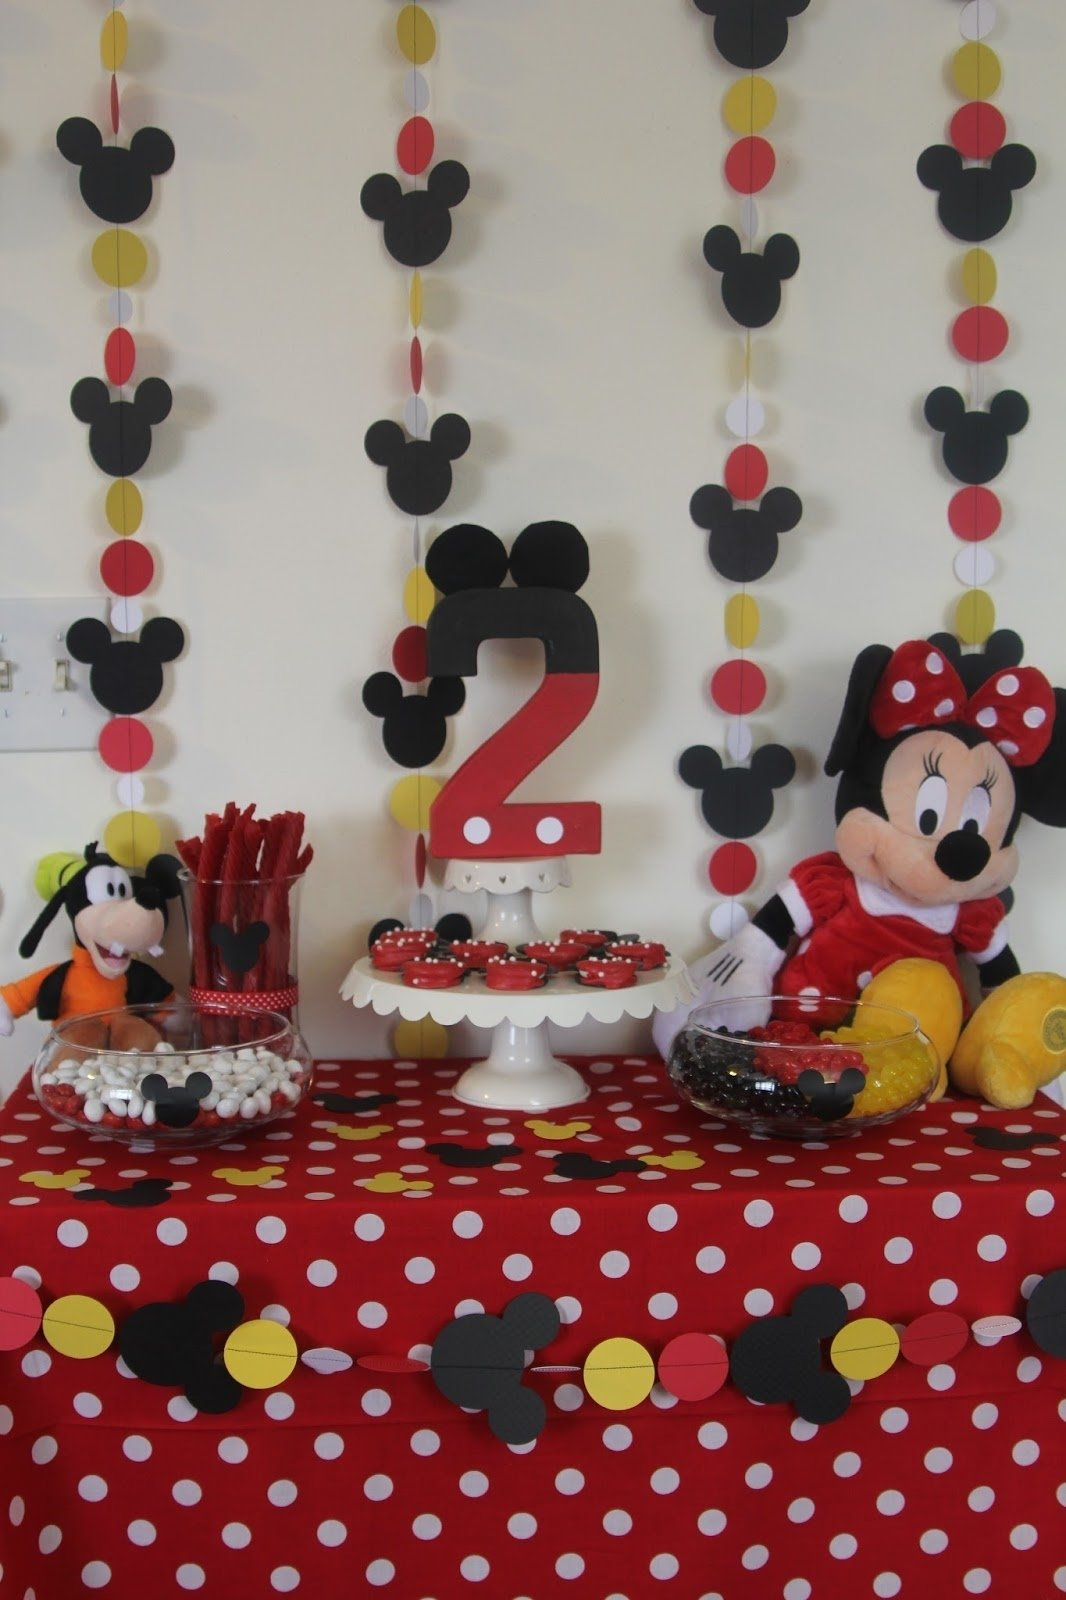 10 Stylish Red Minnie Mouse Party Ideas red and white minnie mouse party decorations prom dresses and beauty